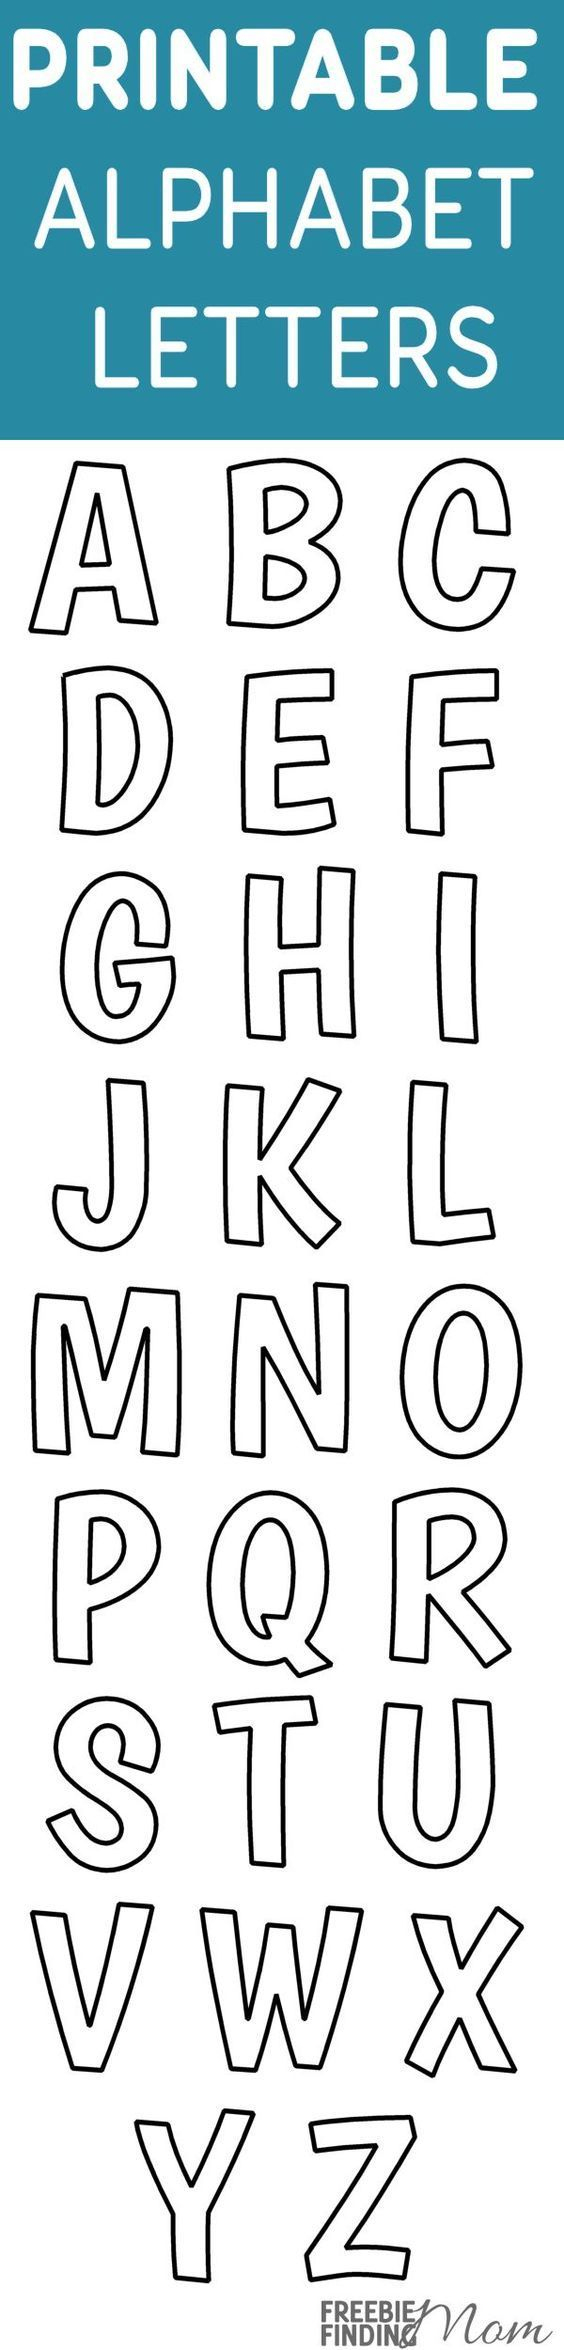 Printable Free Alphabet Templates   The Group Board On Pinterest - Online Letter Stencils Free Printable